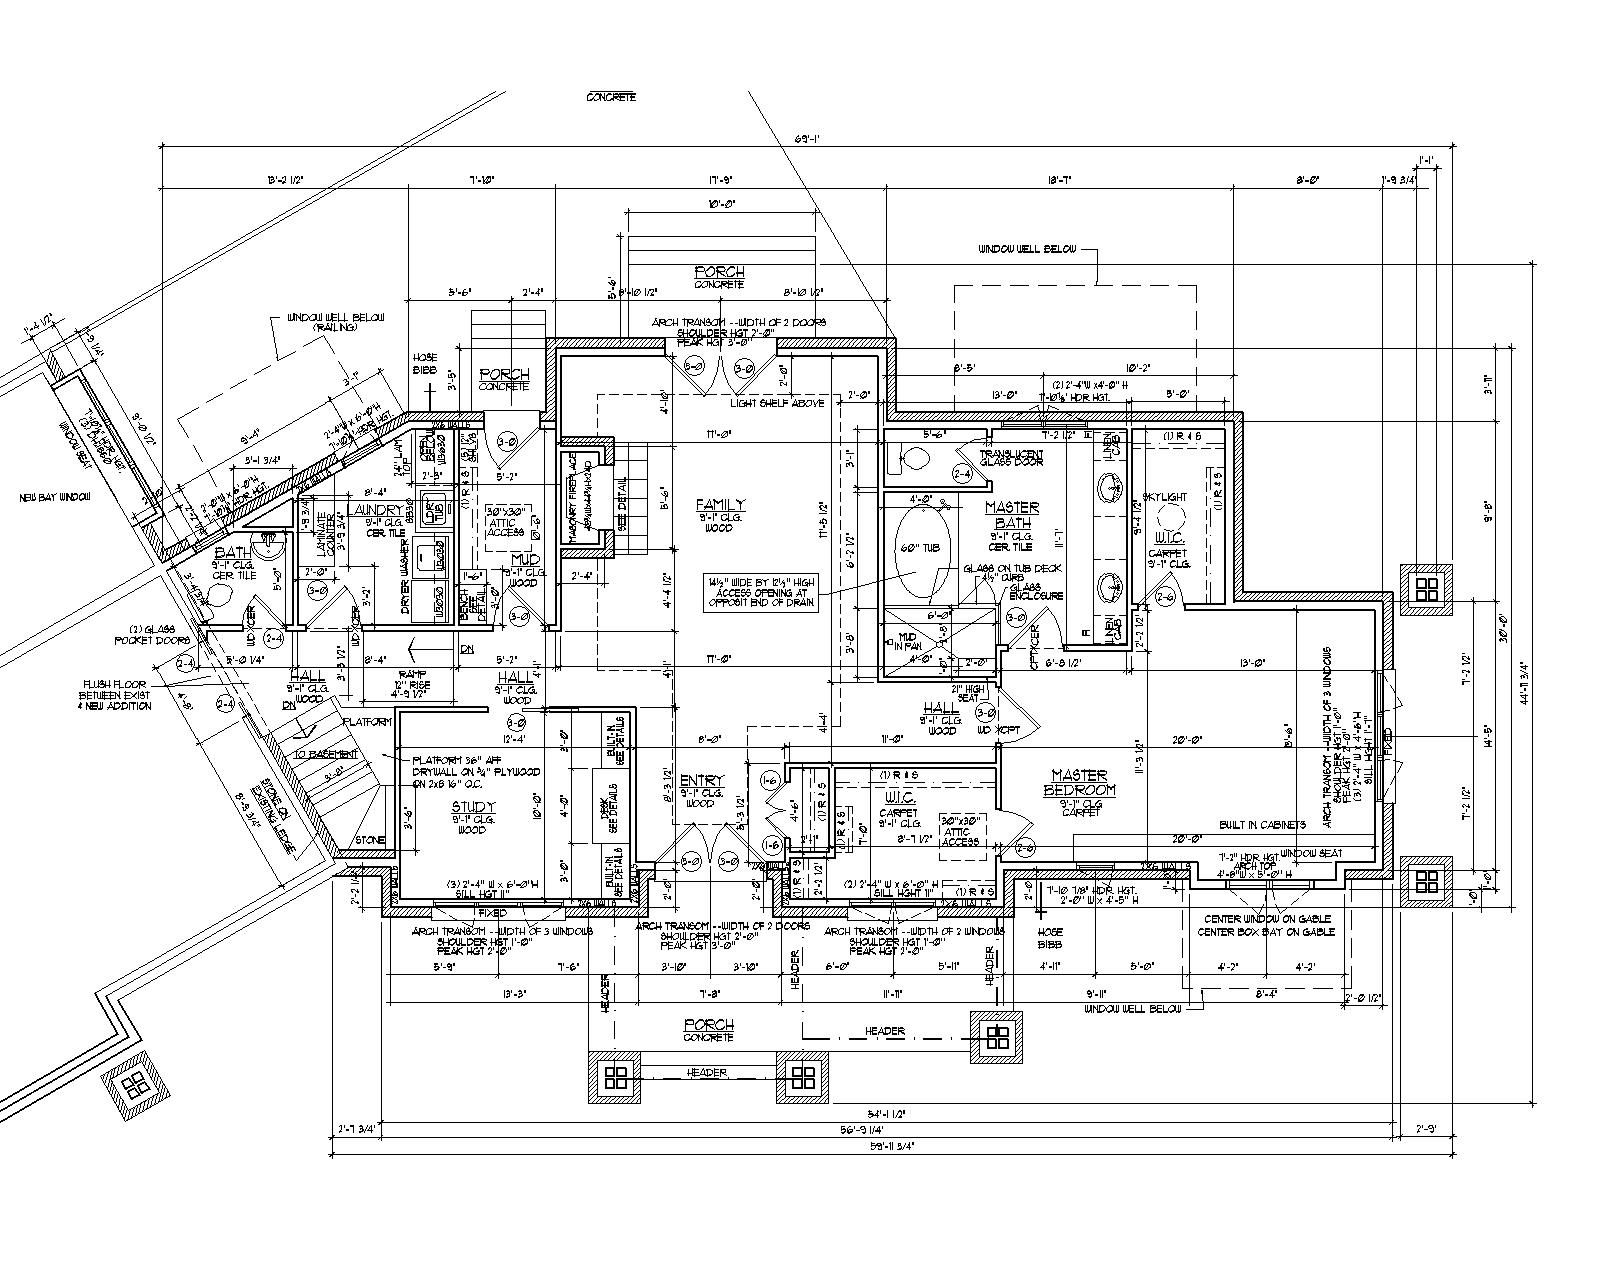 2d autocad house plans residential building drawings cad ForCad Blueprints